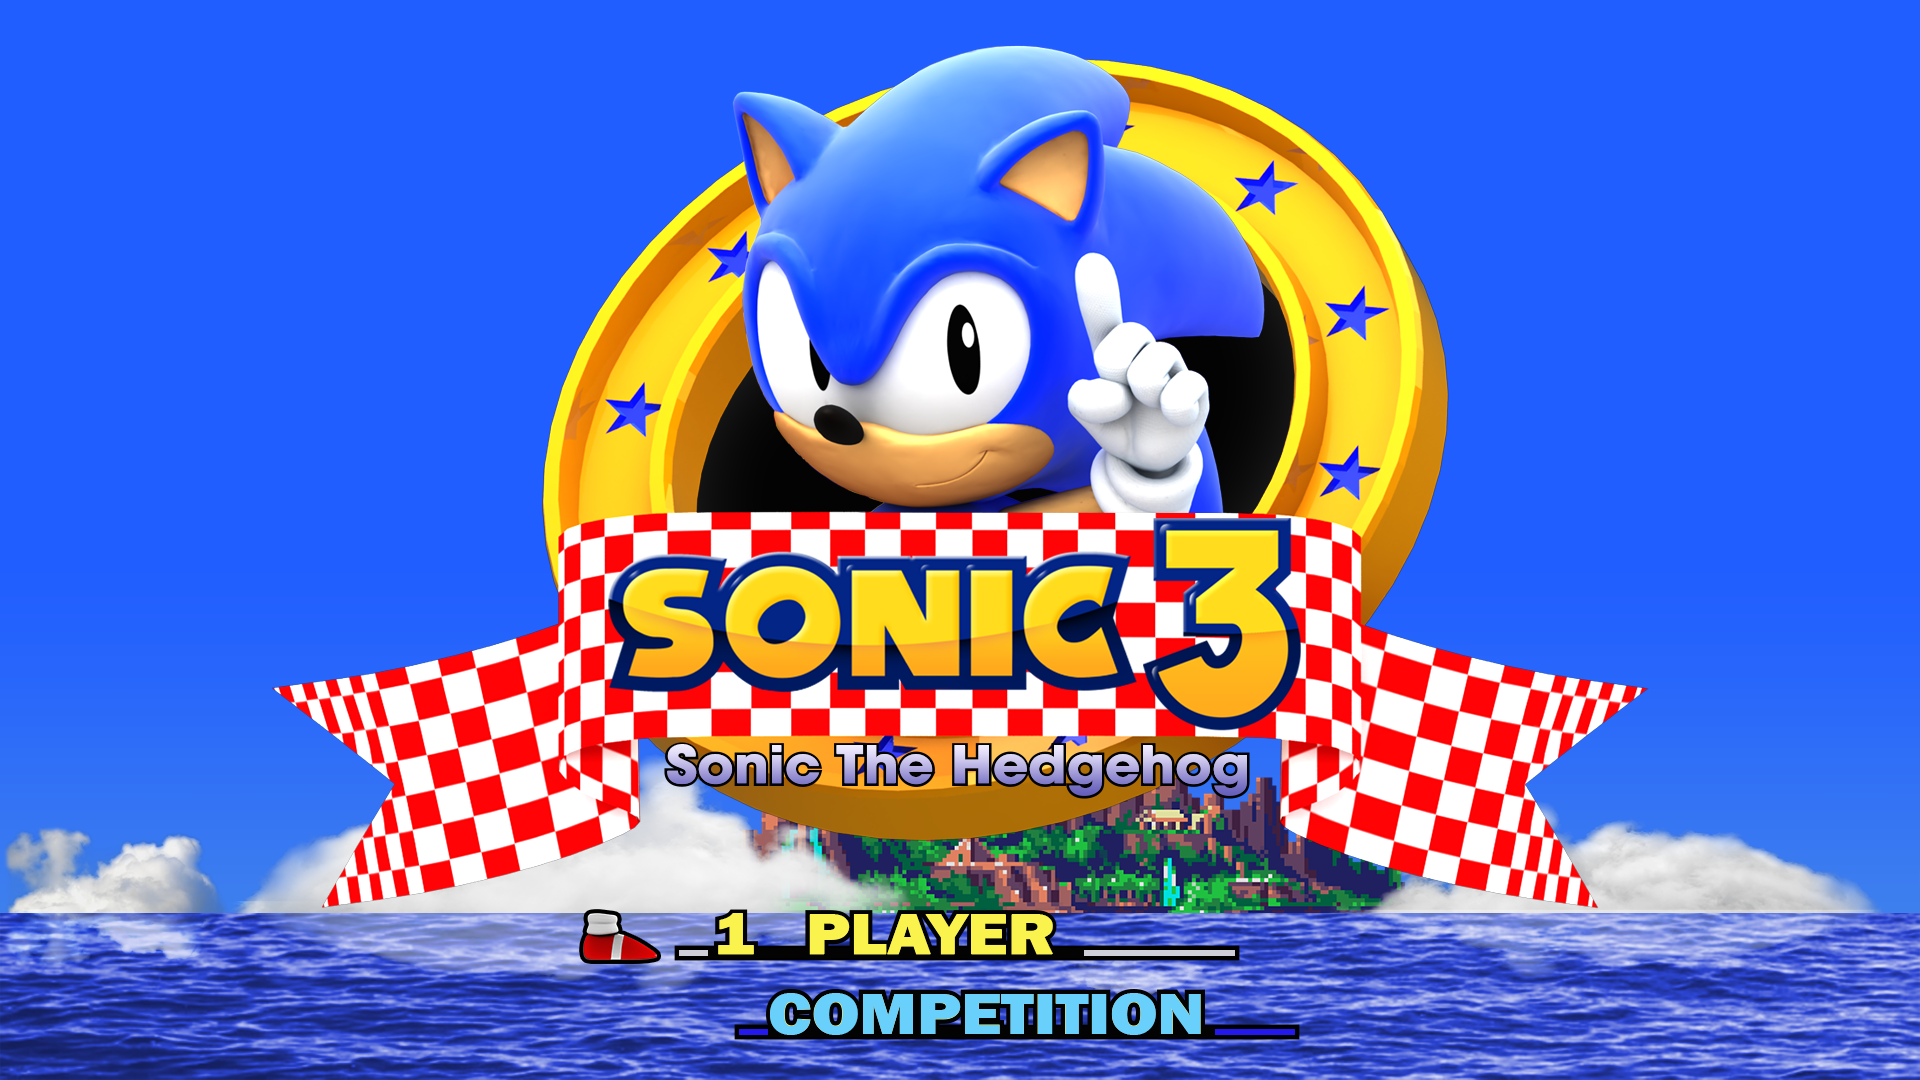 Sonic The Hedgehog 3 Title Screen 3d Remake By Tbsf Yt On Deviantart